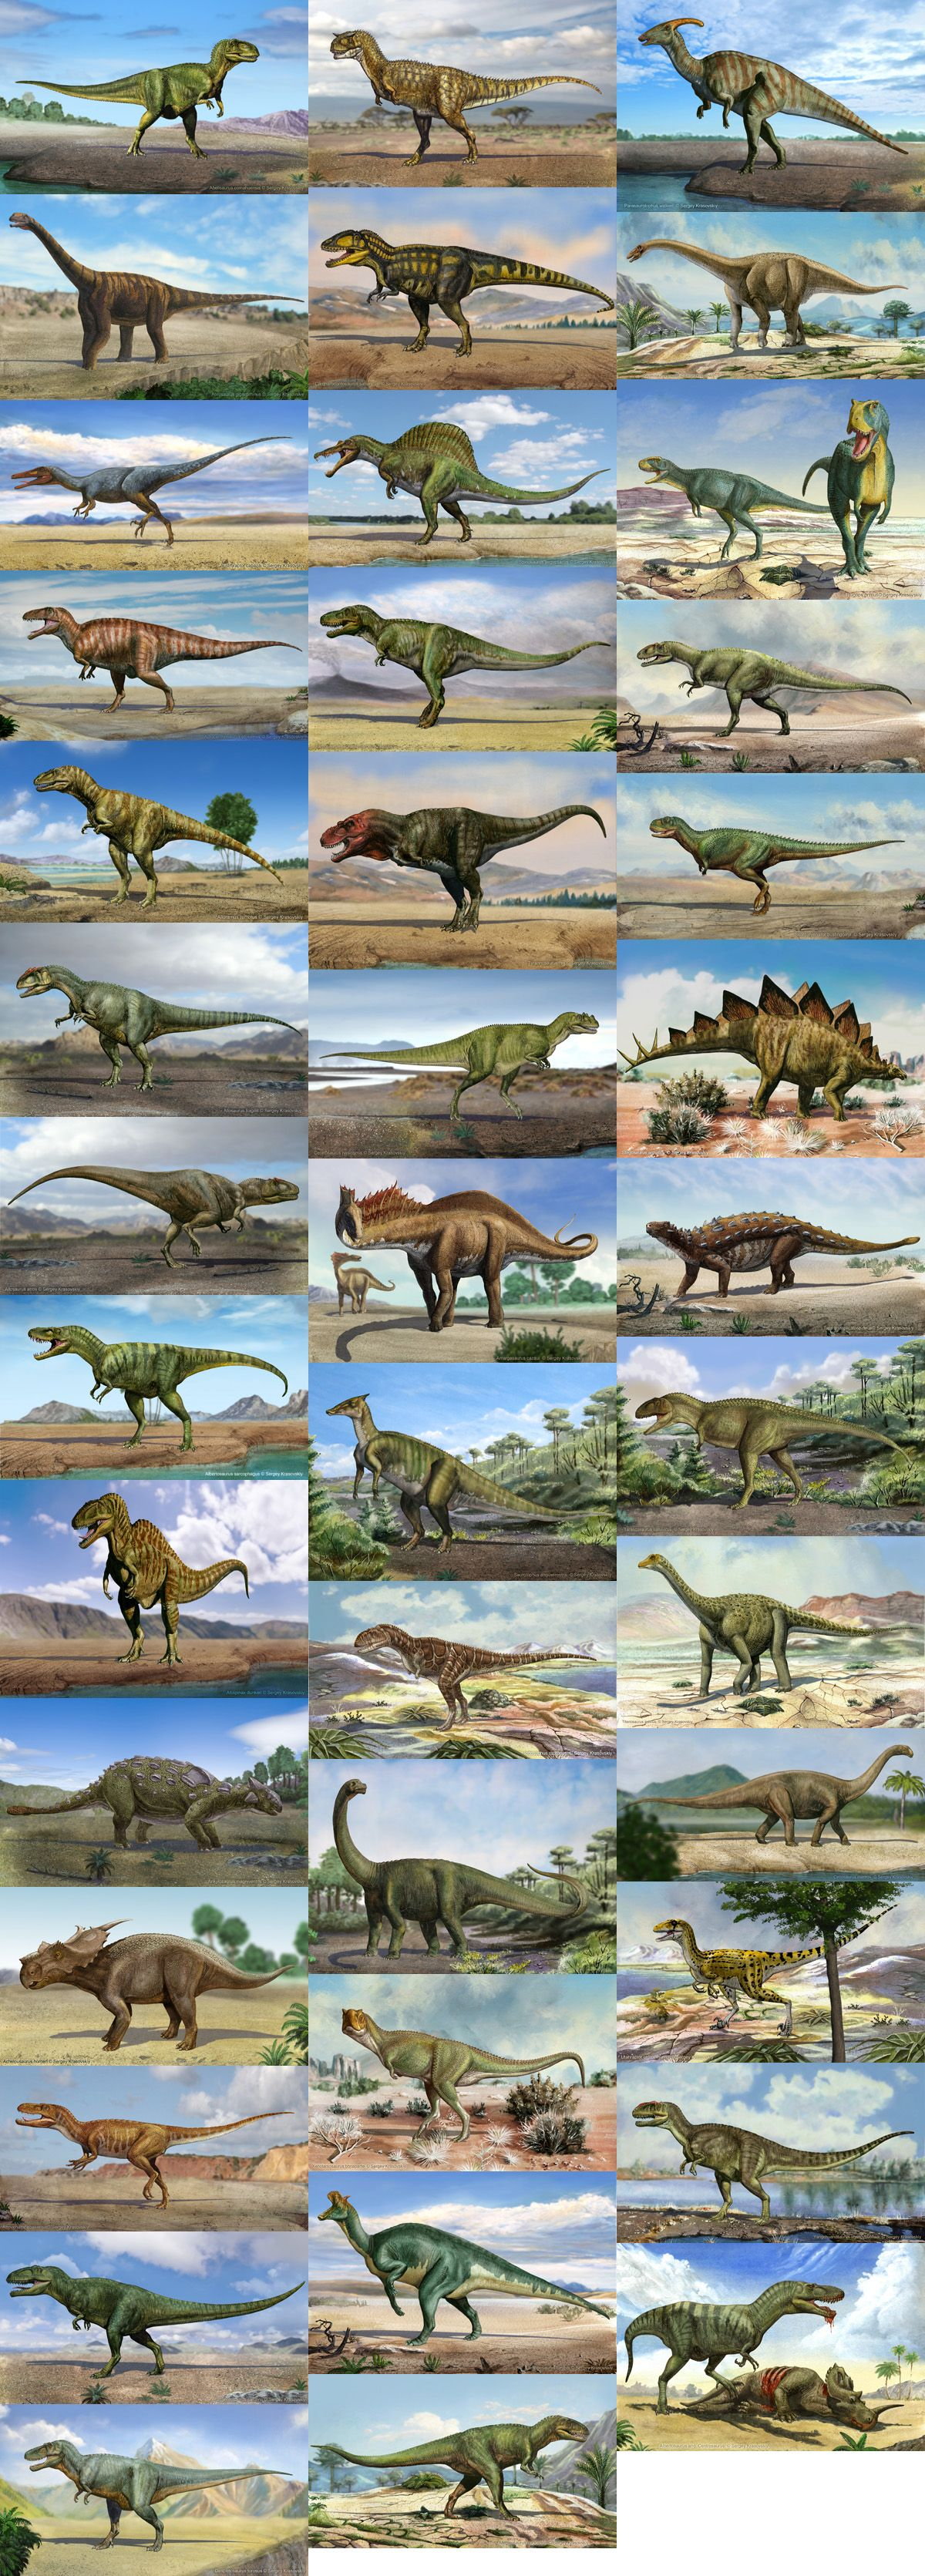 upgrade+DINOSAURS+by+atrox1.deviantart.com+on+@DeviantArt #dinosaurillustration